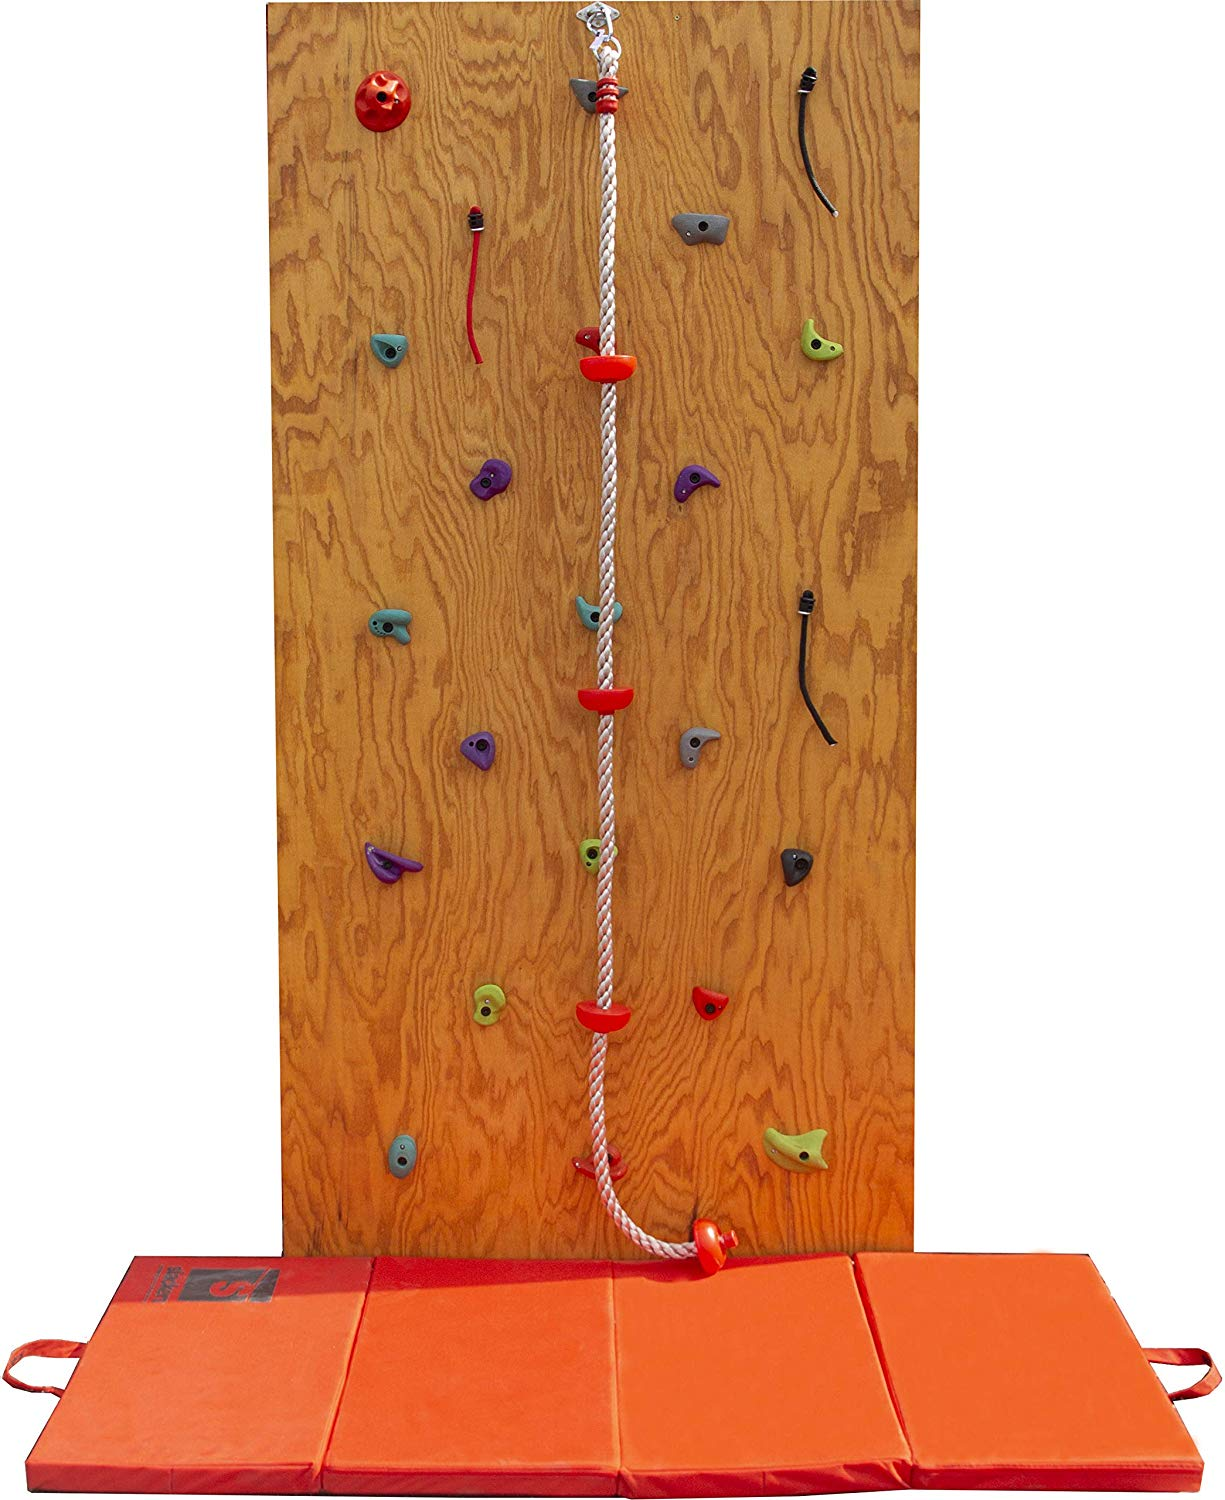 Slackers Diy Rock Climbing Wall Kit W Crash Pad Climbing Rope Rock Wall Obstacle Course Wall Rock Climbing Playset B4 Adventure